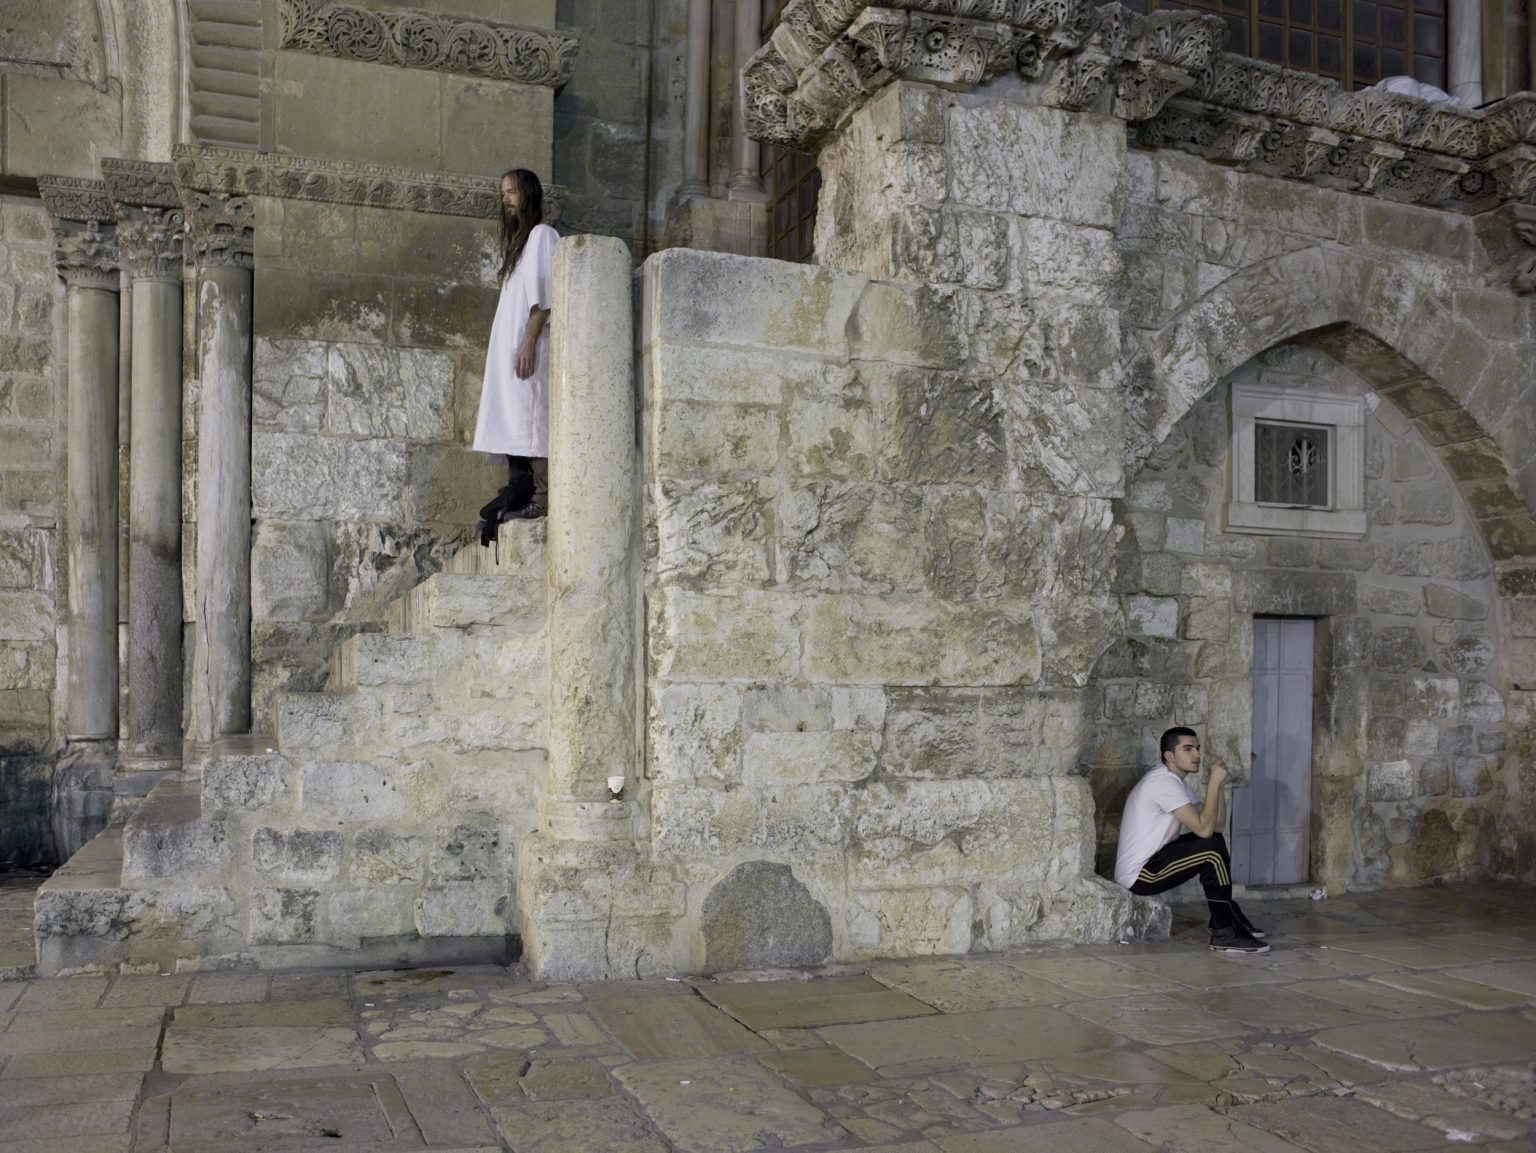 Pilgrims waiting at the entrance of the Holy Sepulchre in Jerusalem during Good Friday.